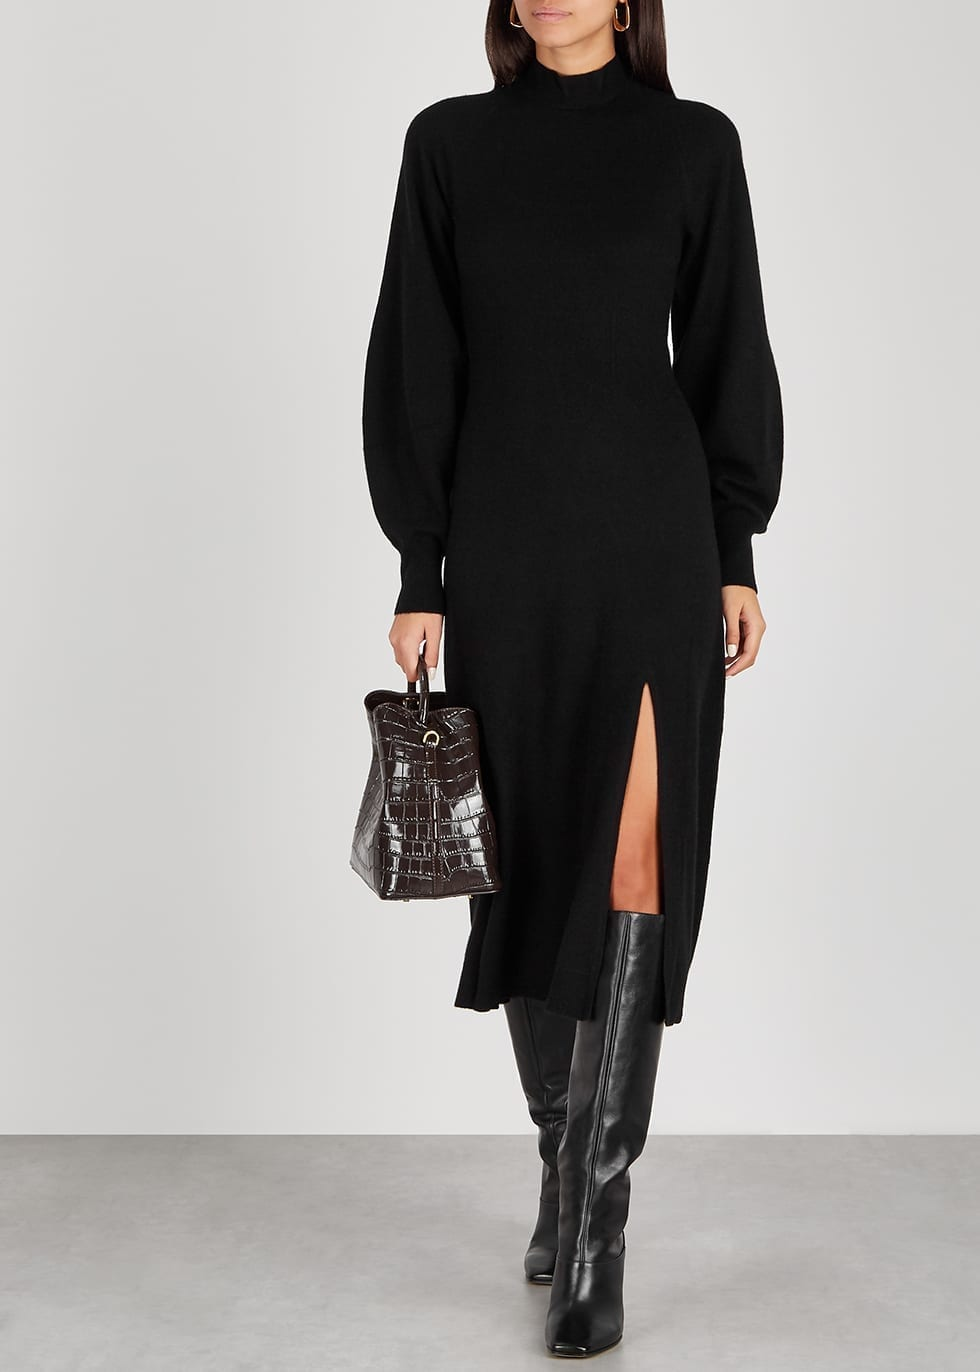 JONATHAN SIMKHAI Brielle Black Cashmere Midi Dress